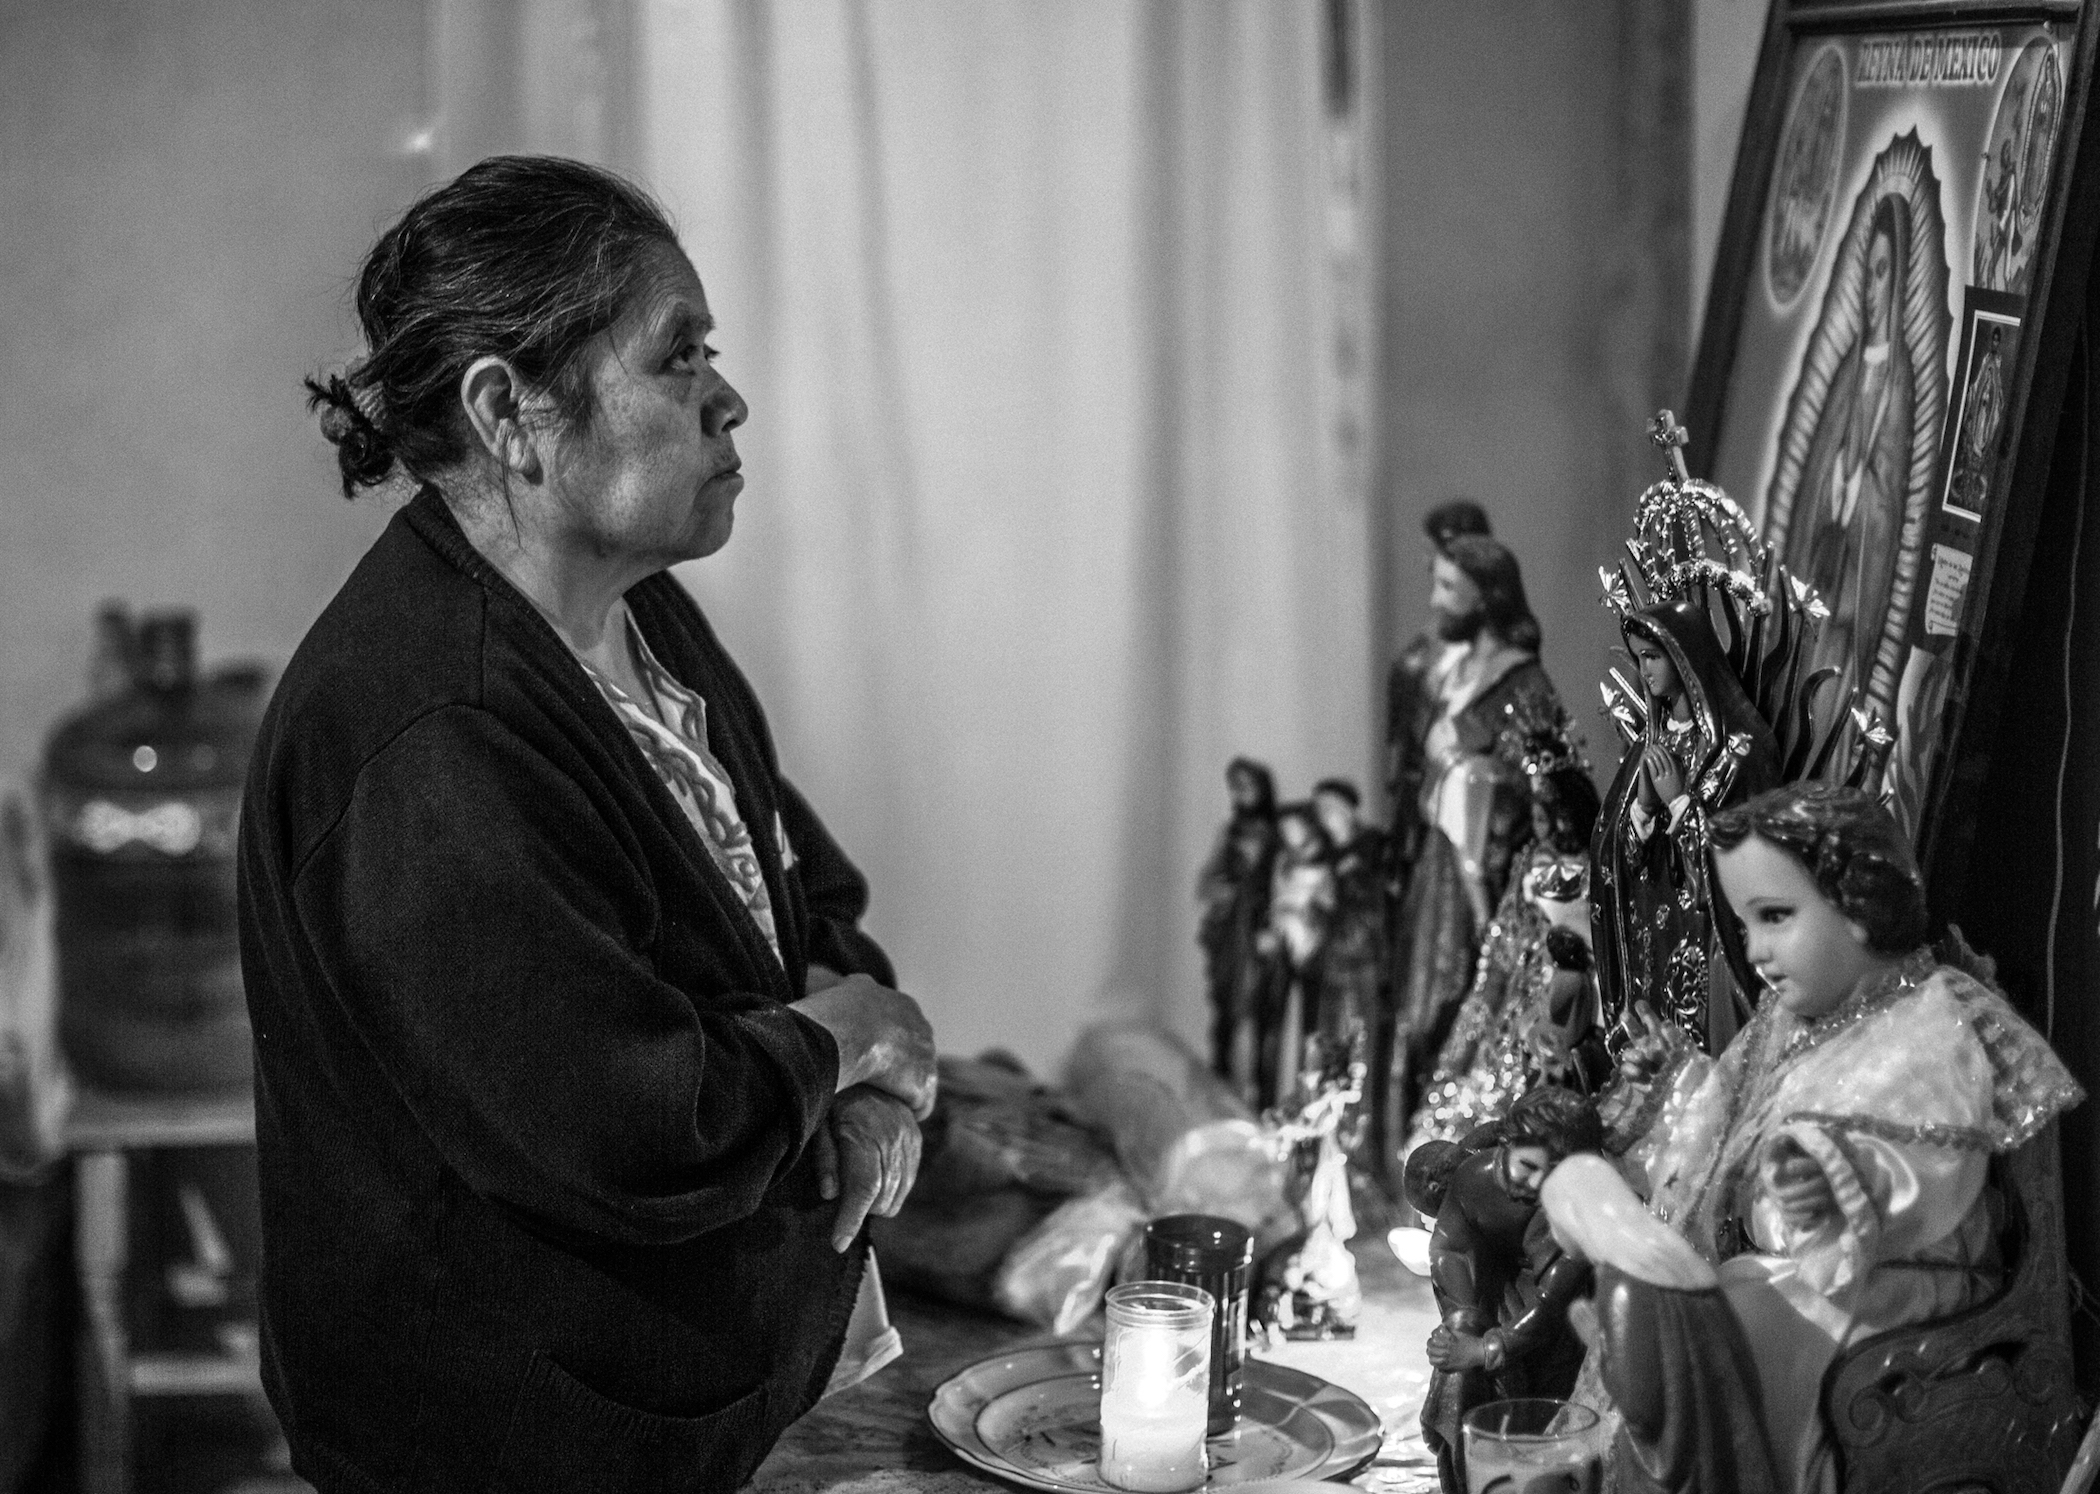 Angelo Cabrera's mother, Irma, prays for her son in San Antonio Texcala, Mexico. (Maite H. Mateo/GroundTruth)